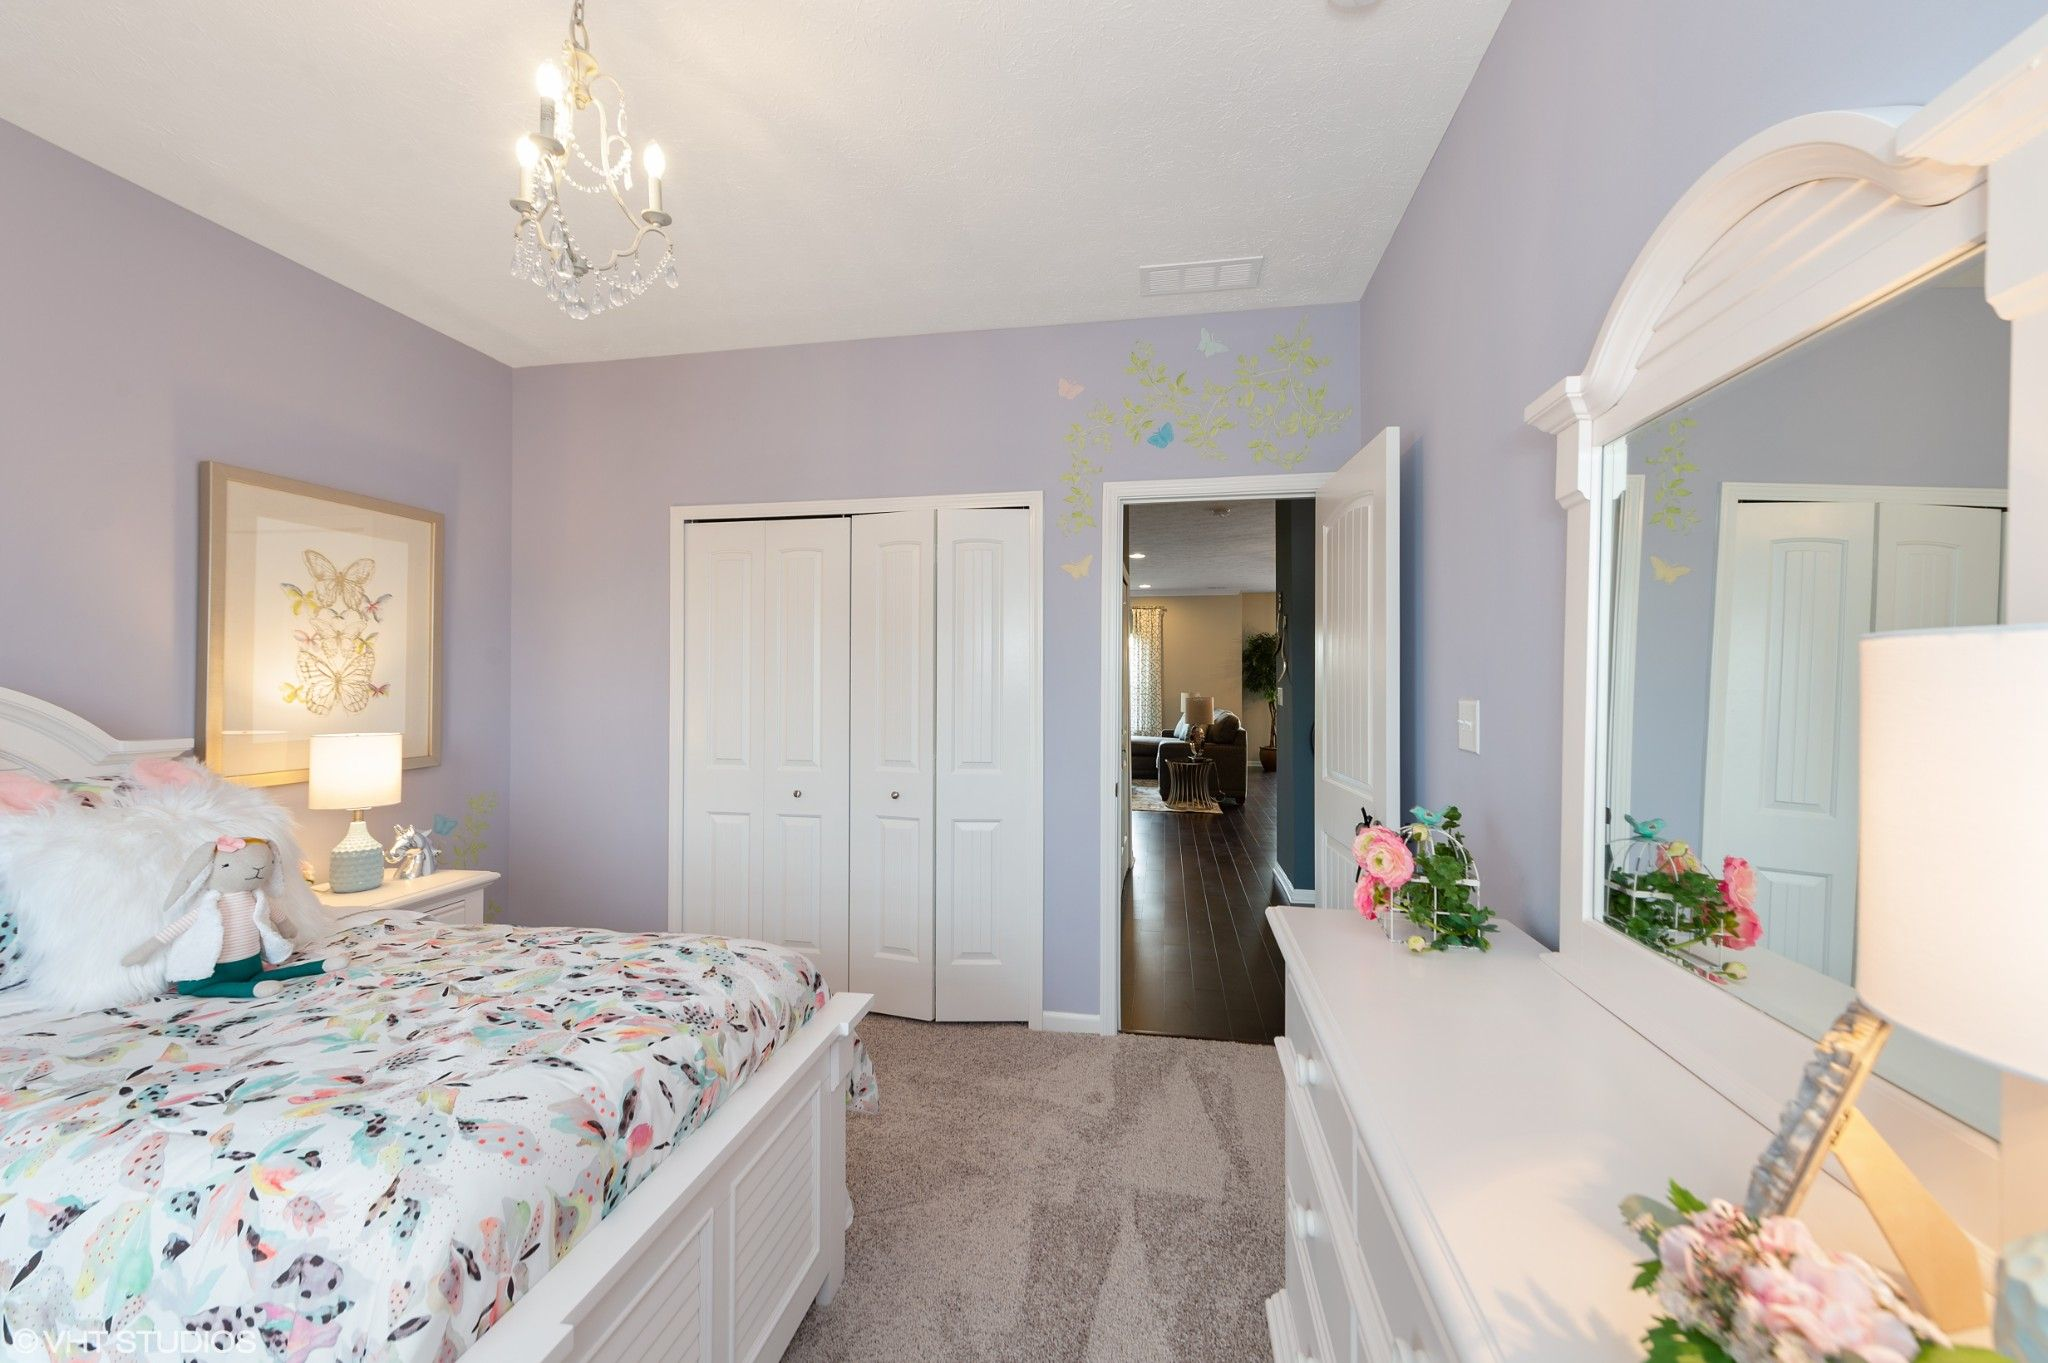 Bedroom featured in the Hudson By Olthof Homes in Indianapolis, IN